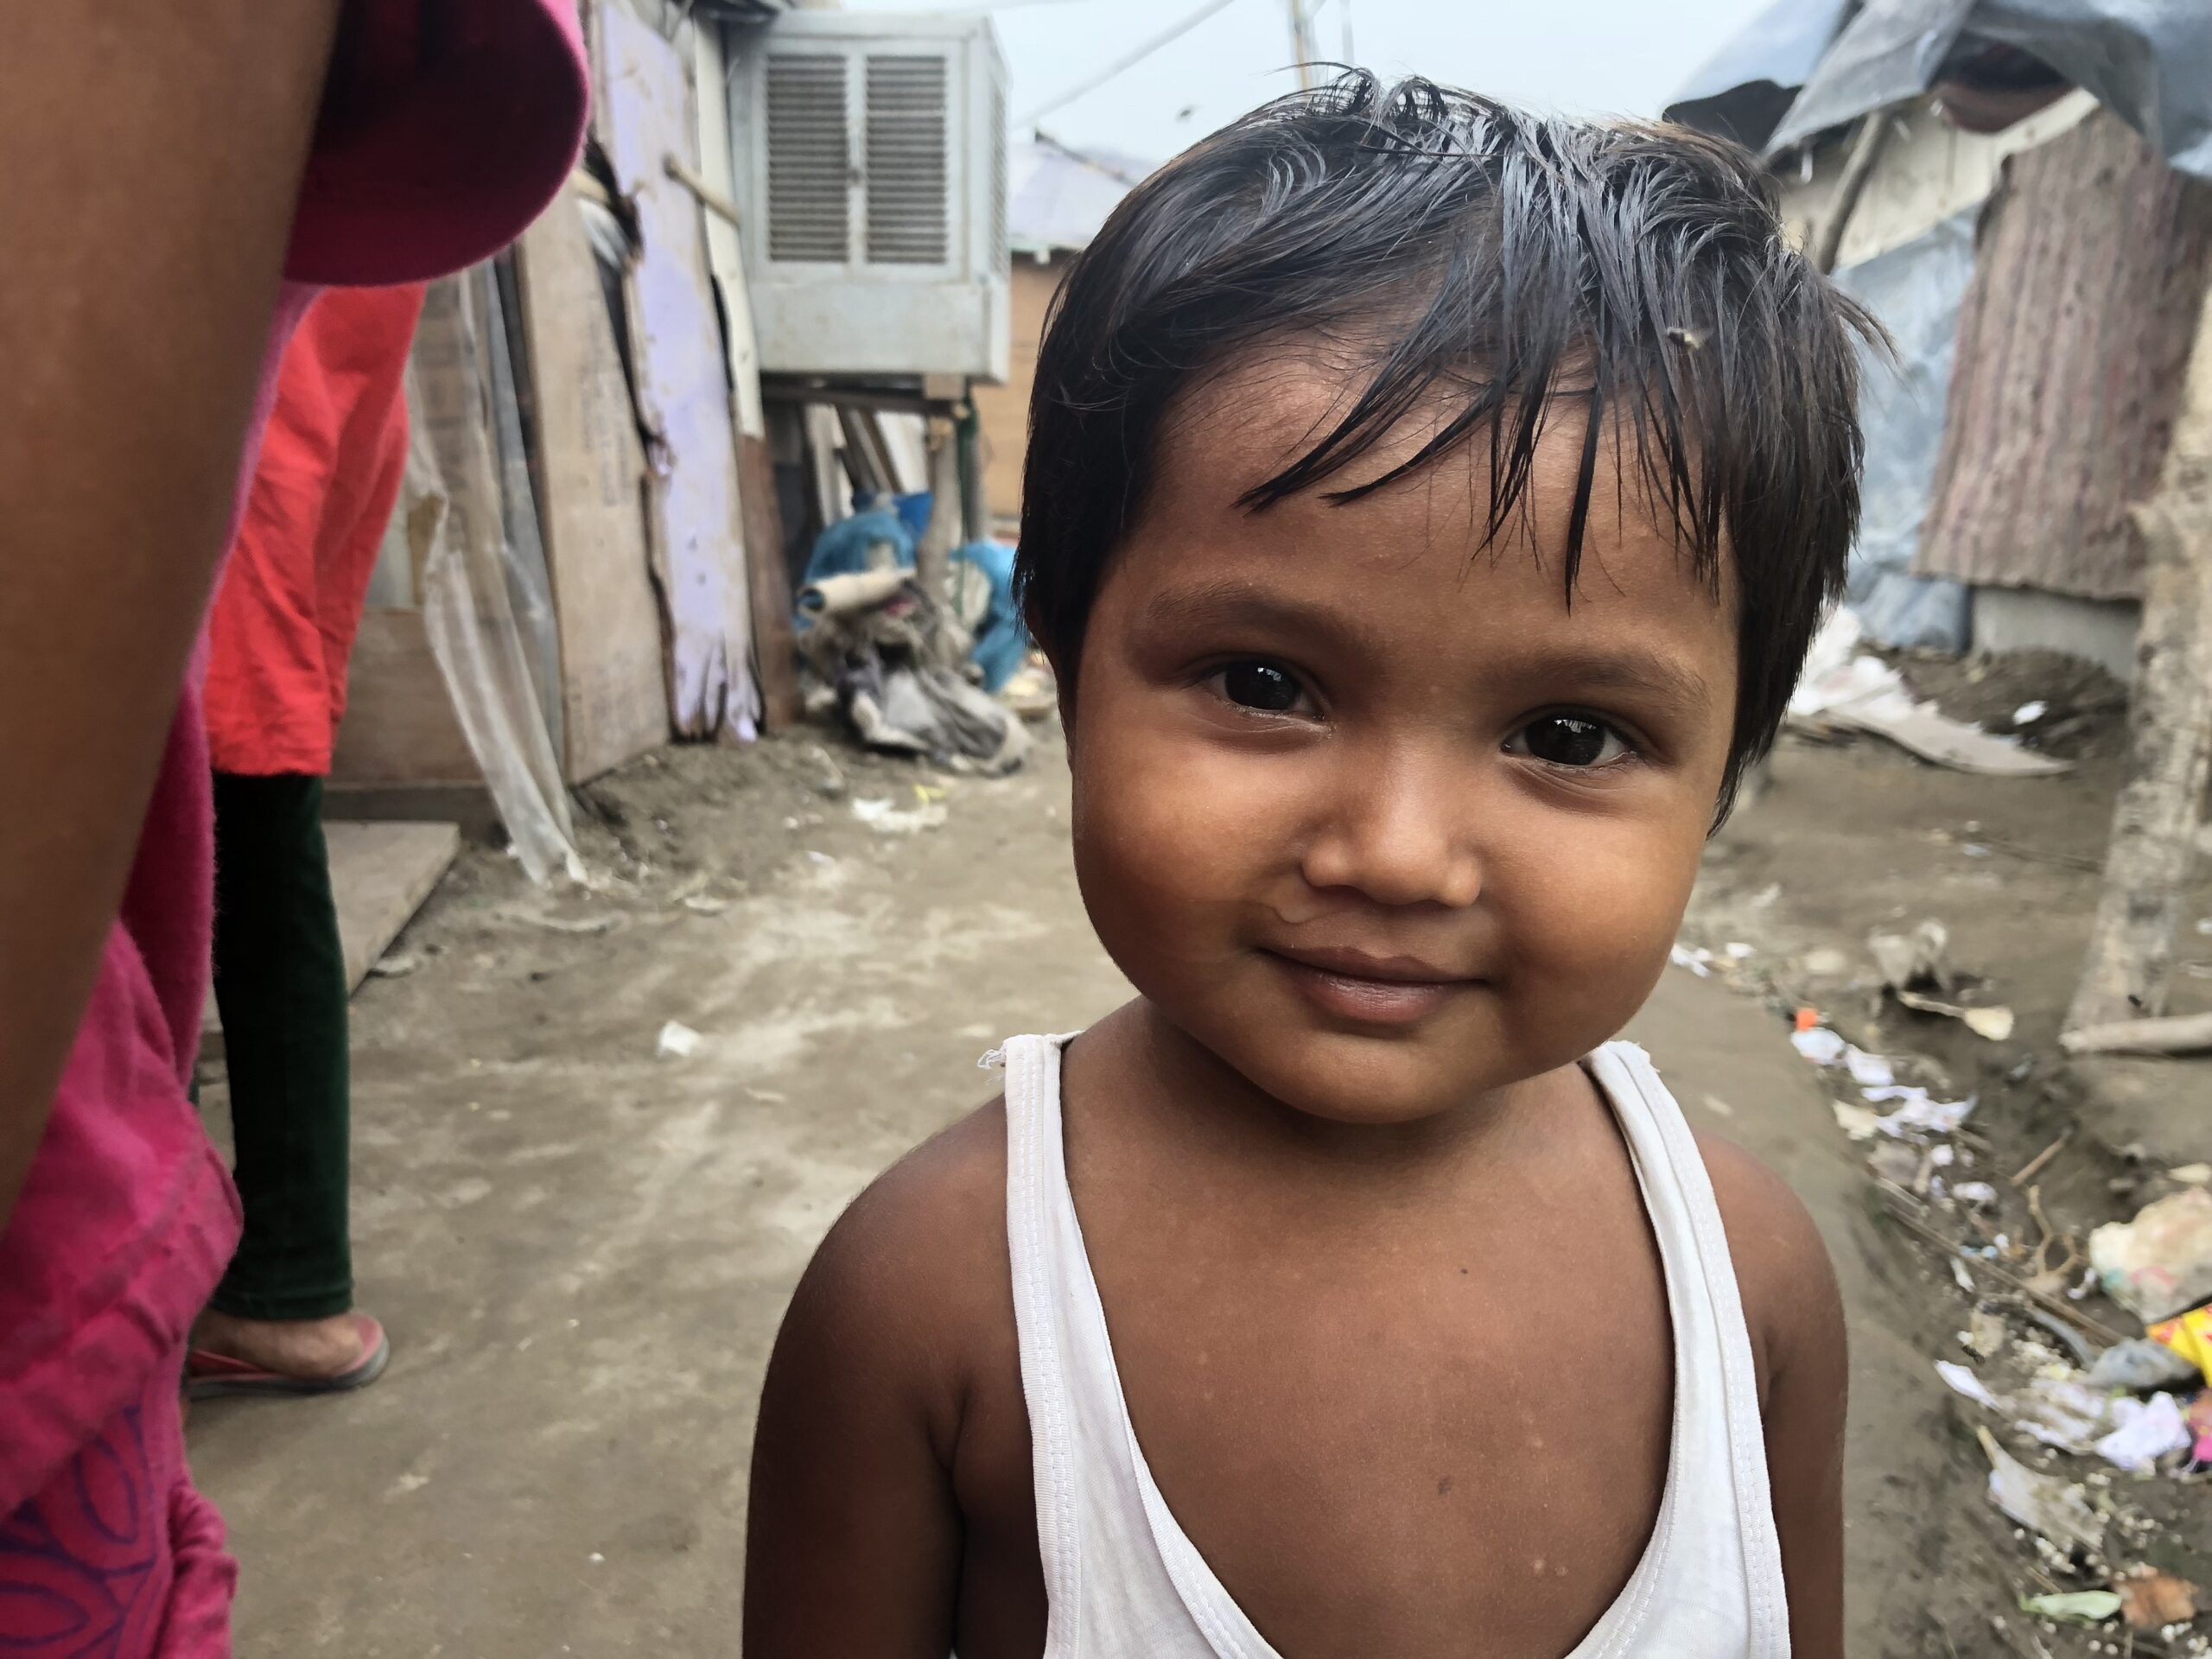 Rohingya-refugee-boy-in-Delhi-India-caring-the-best-way-for-orphans